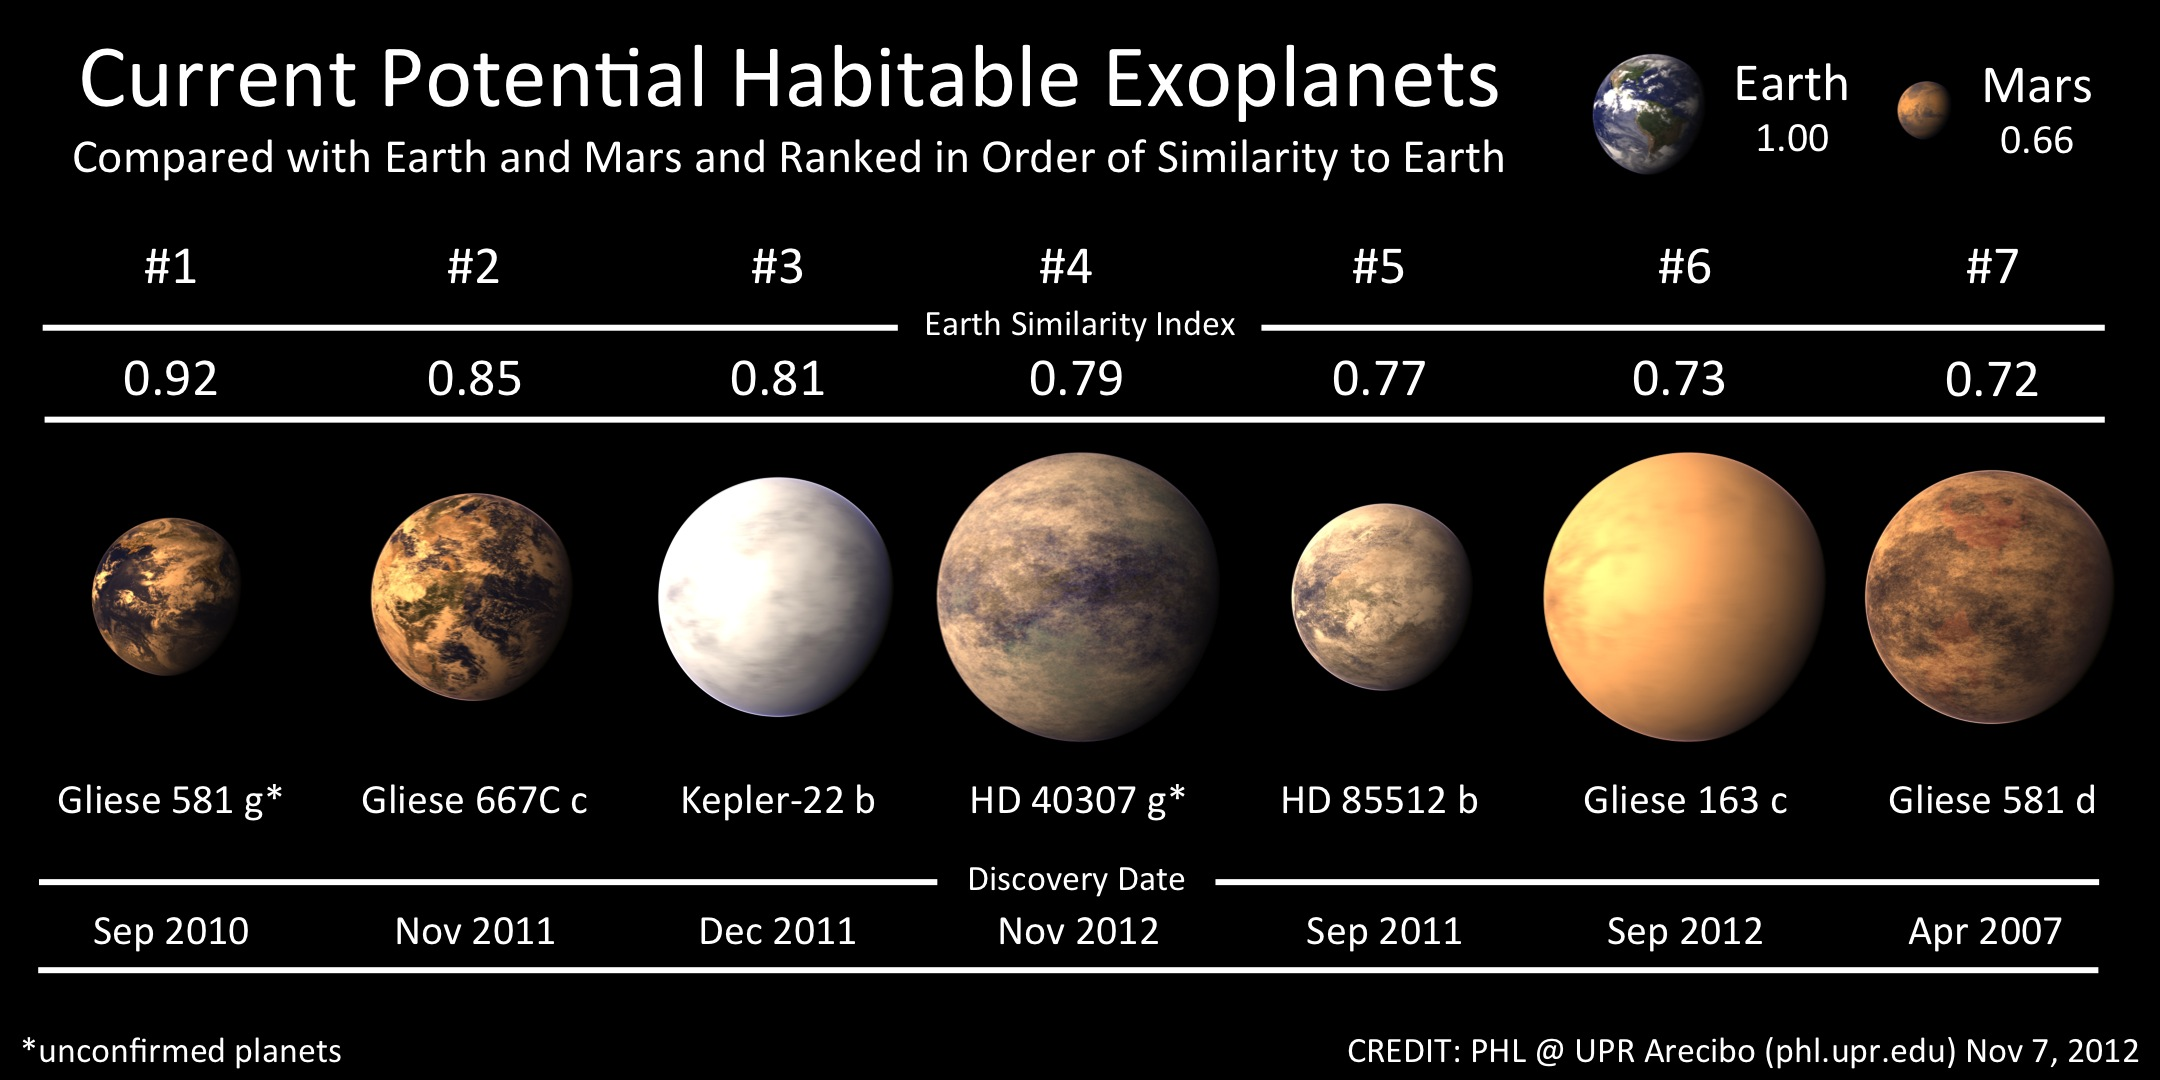 Exoplanetas_potencialmente_habitables